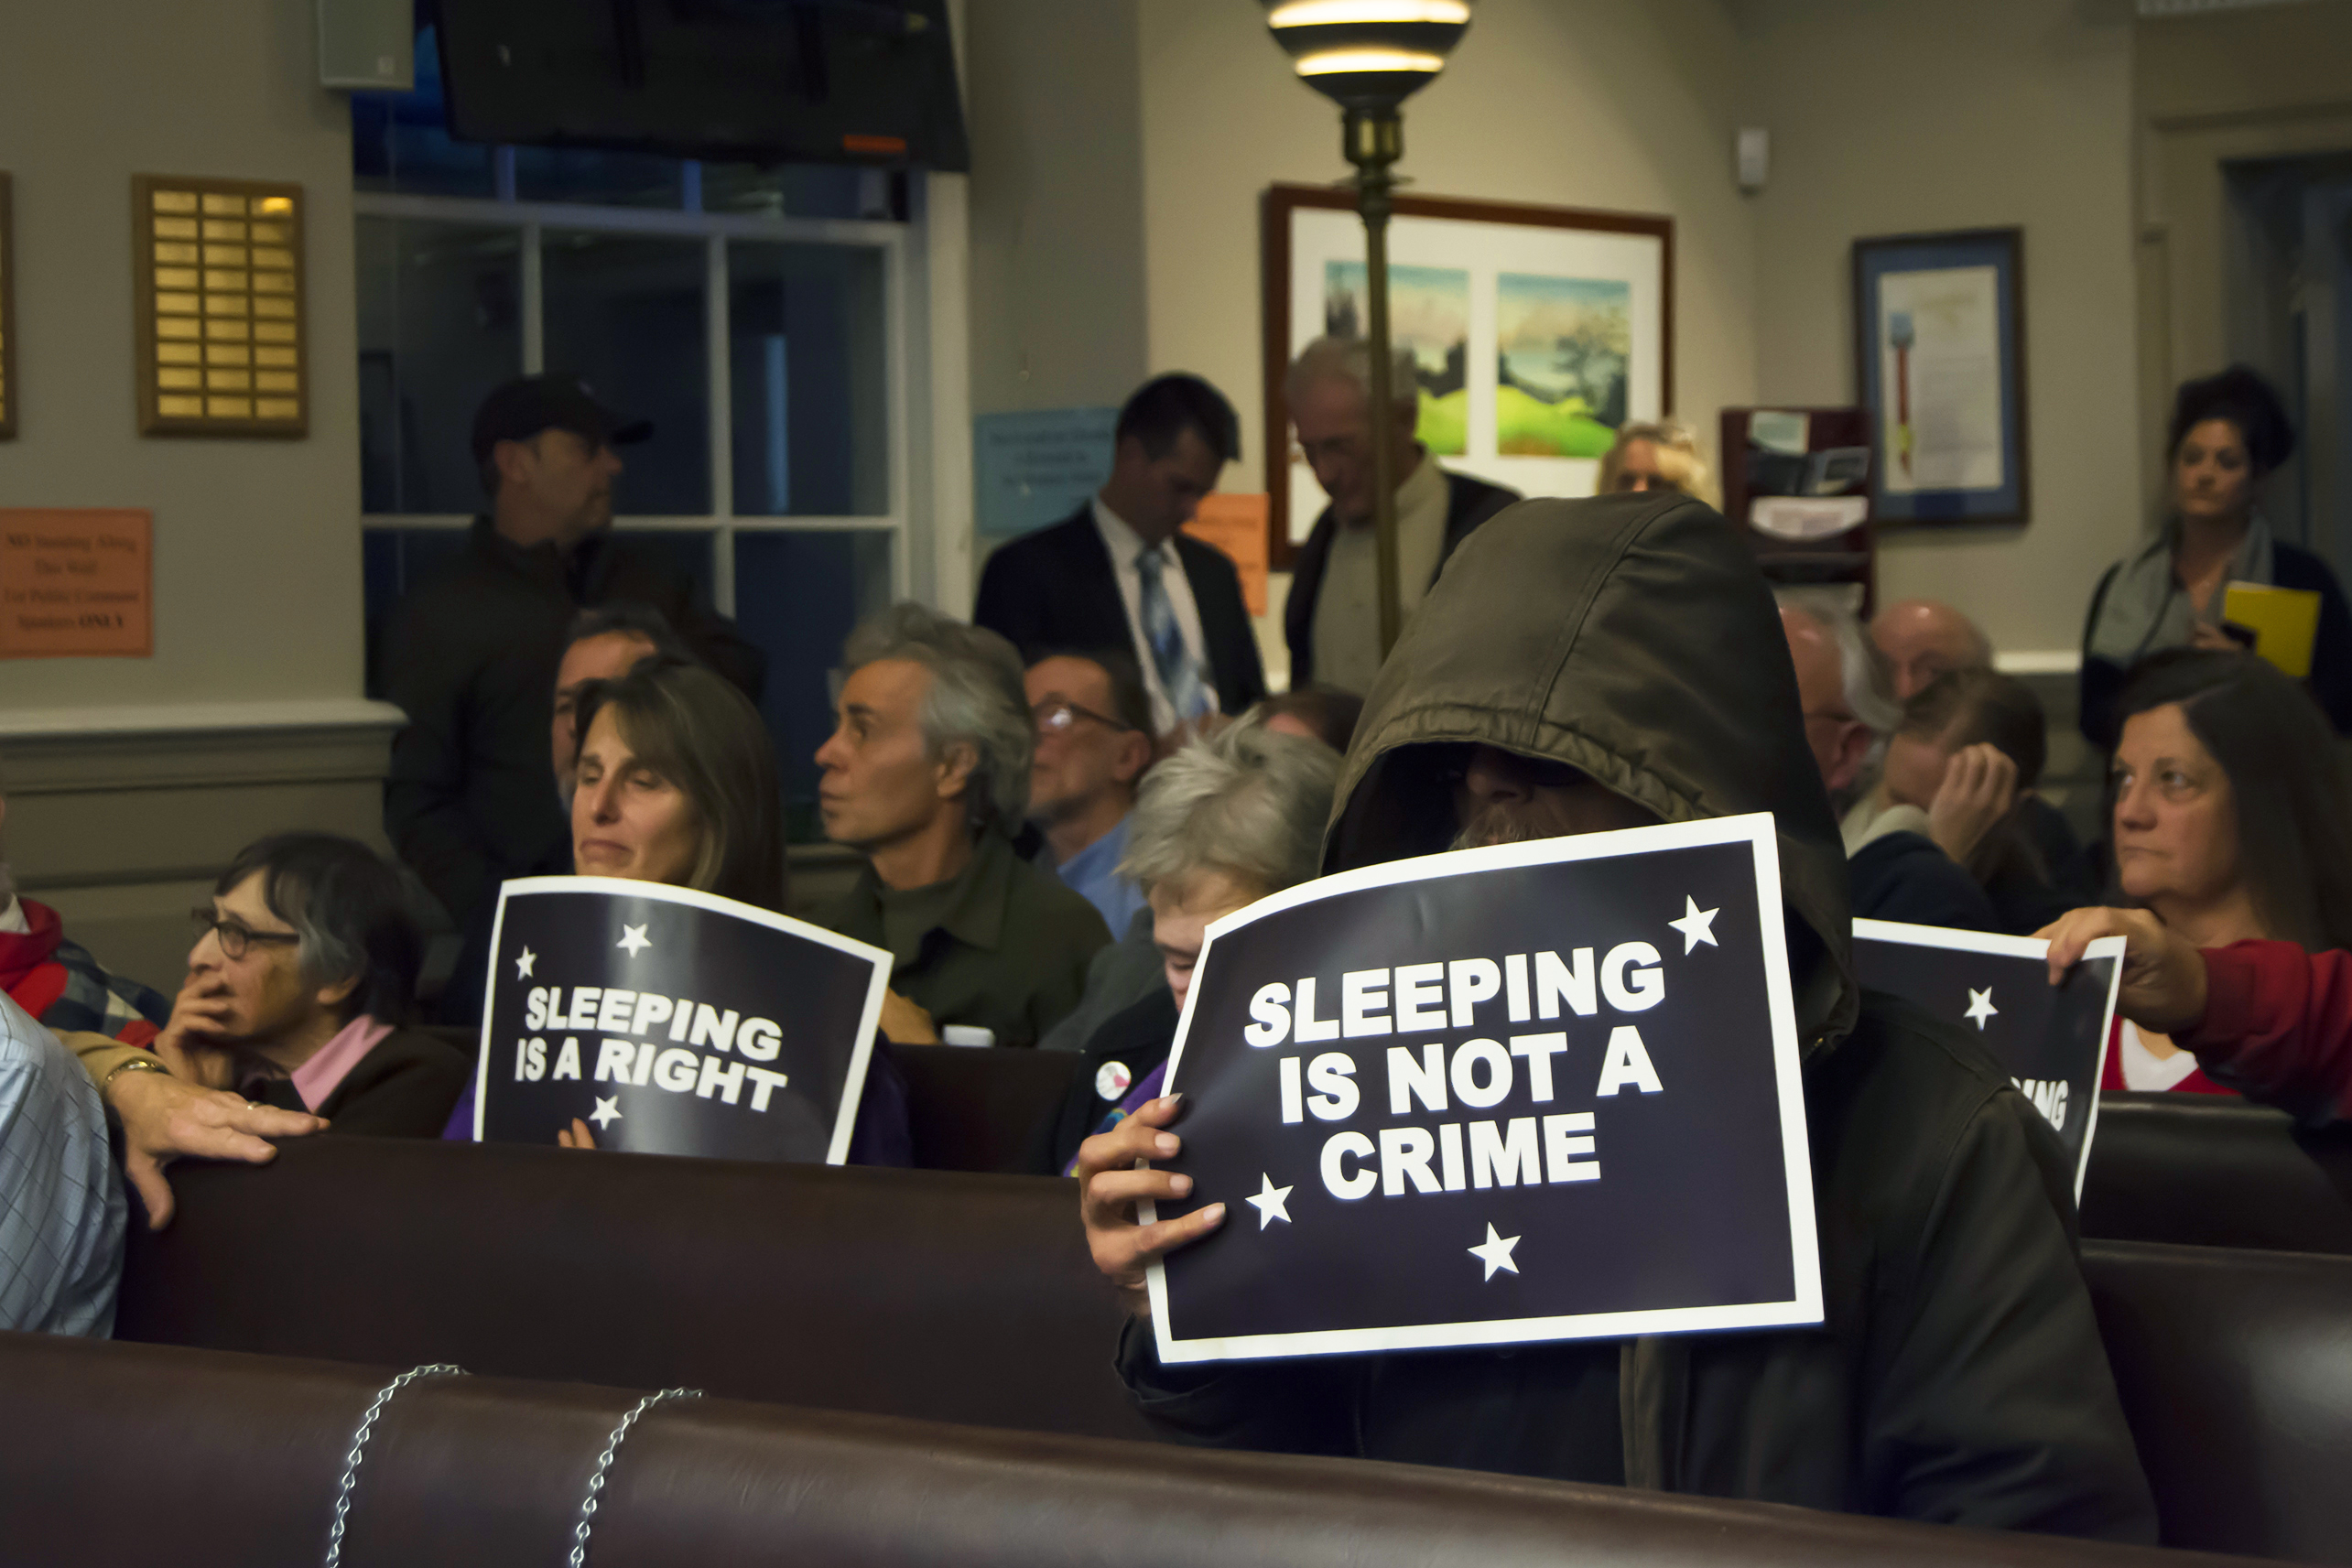 The majority of people who attended the city council meeting on Tuesday night were members of the public in support of the proposal. Many of them held signs to express their stance against the sleeping ban and criminalization of houseless people. Photo by Megan Schnabel